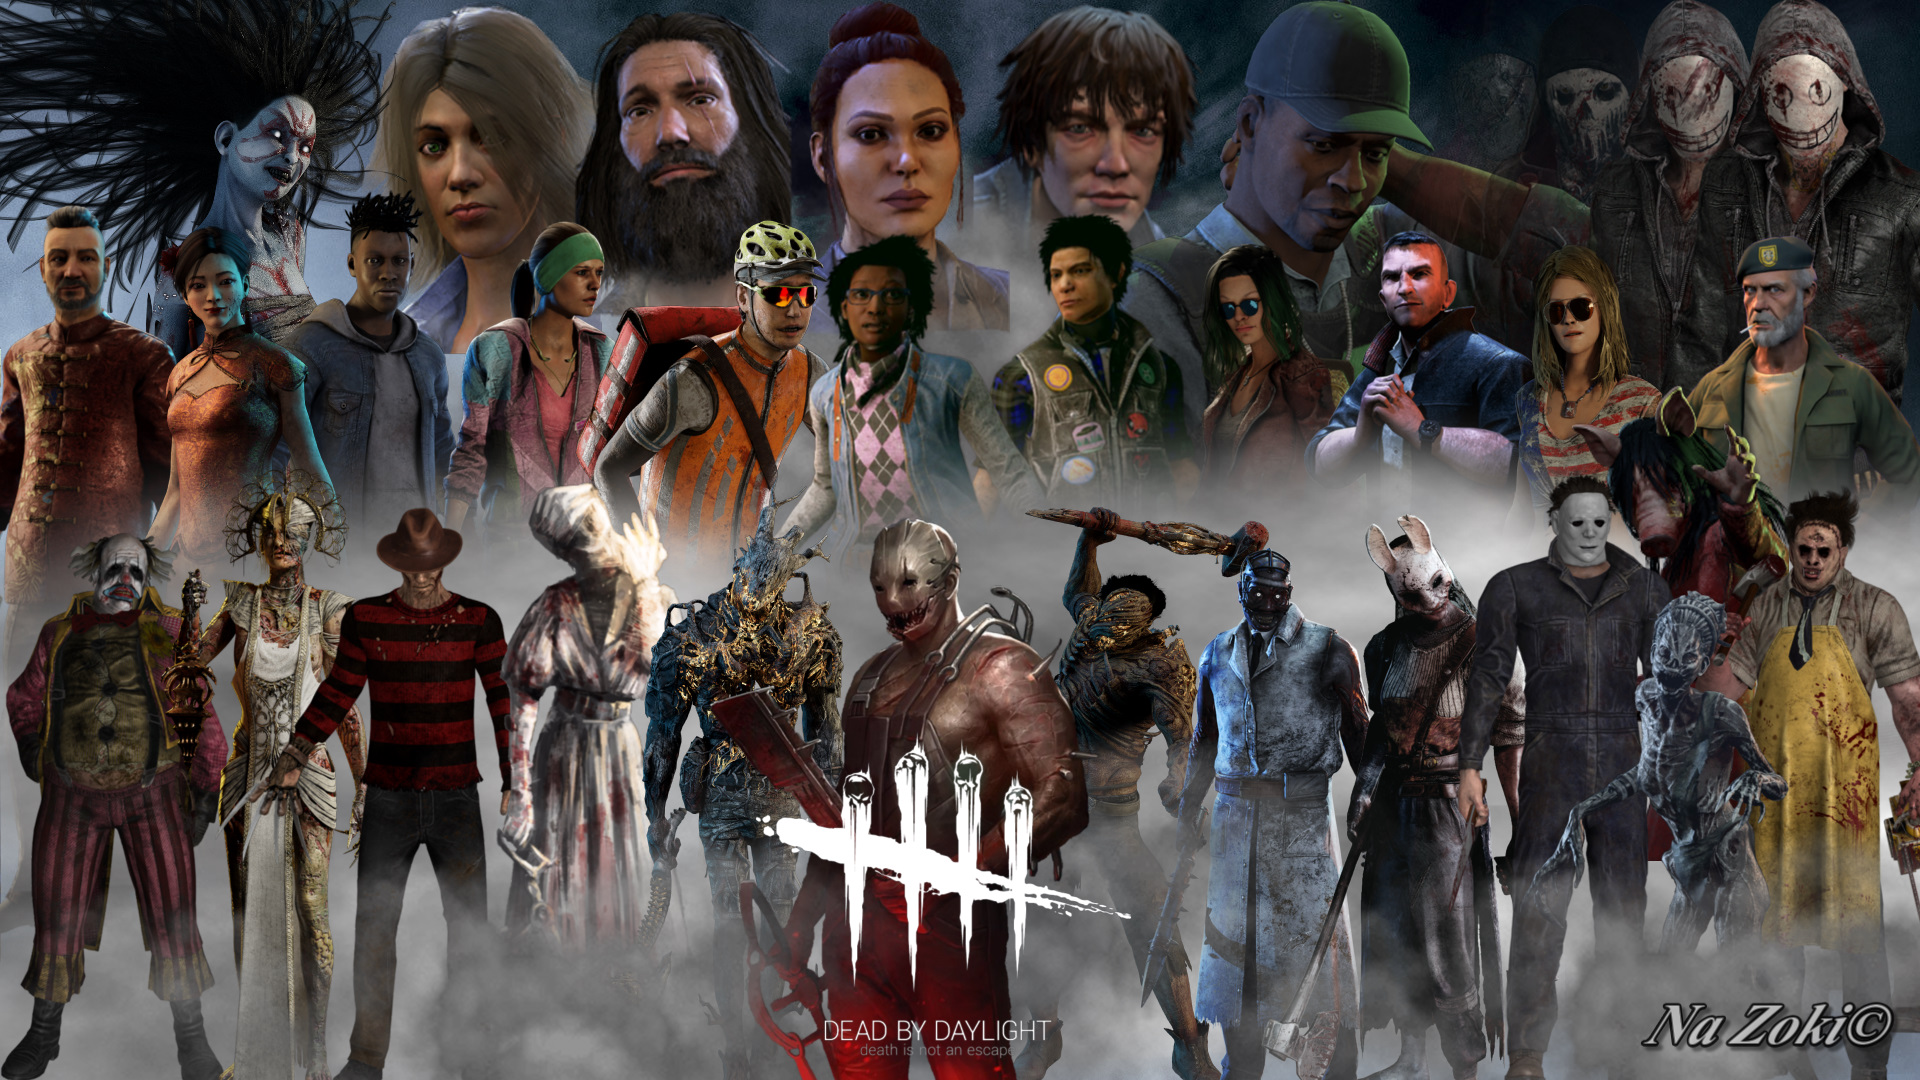 Wallpaper With All The Survivors And Killers Together Dead By